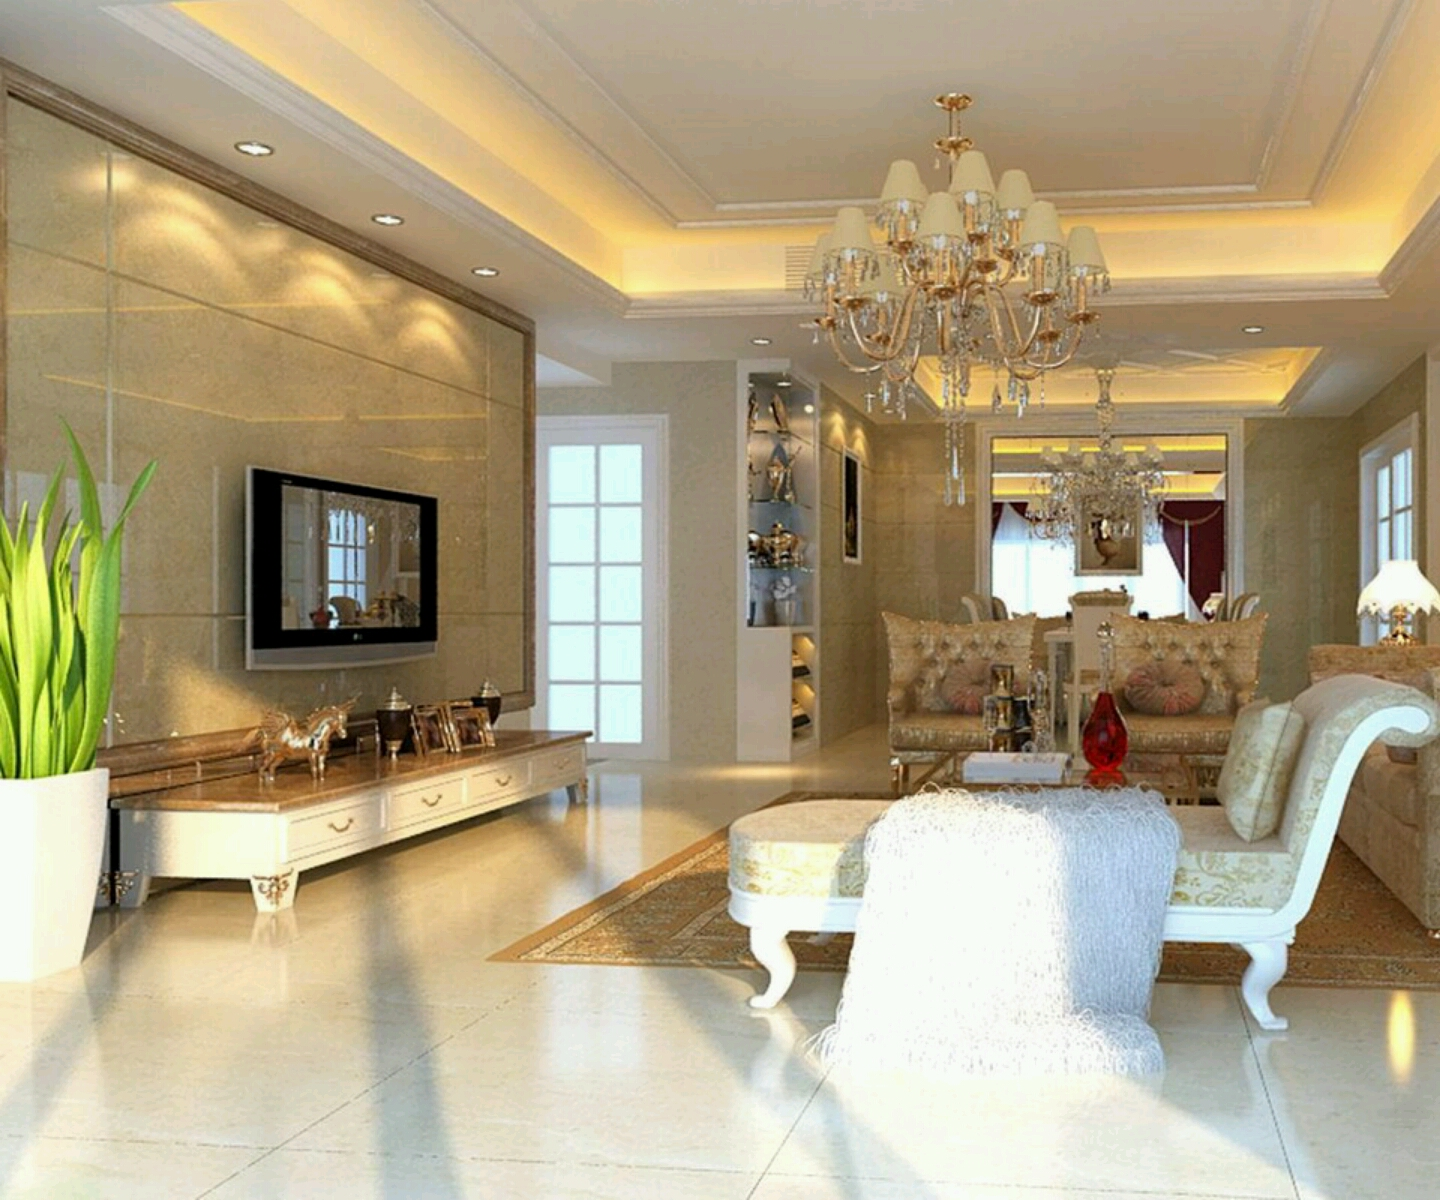 Home decor 2012 luxury homes interior decoration living for Interior room decoration